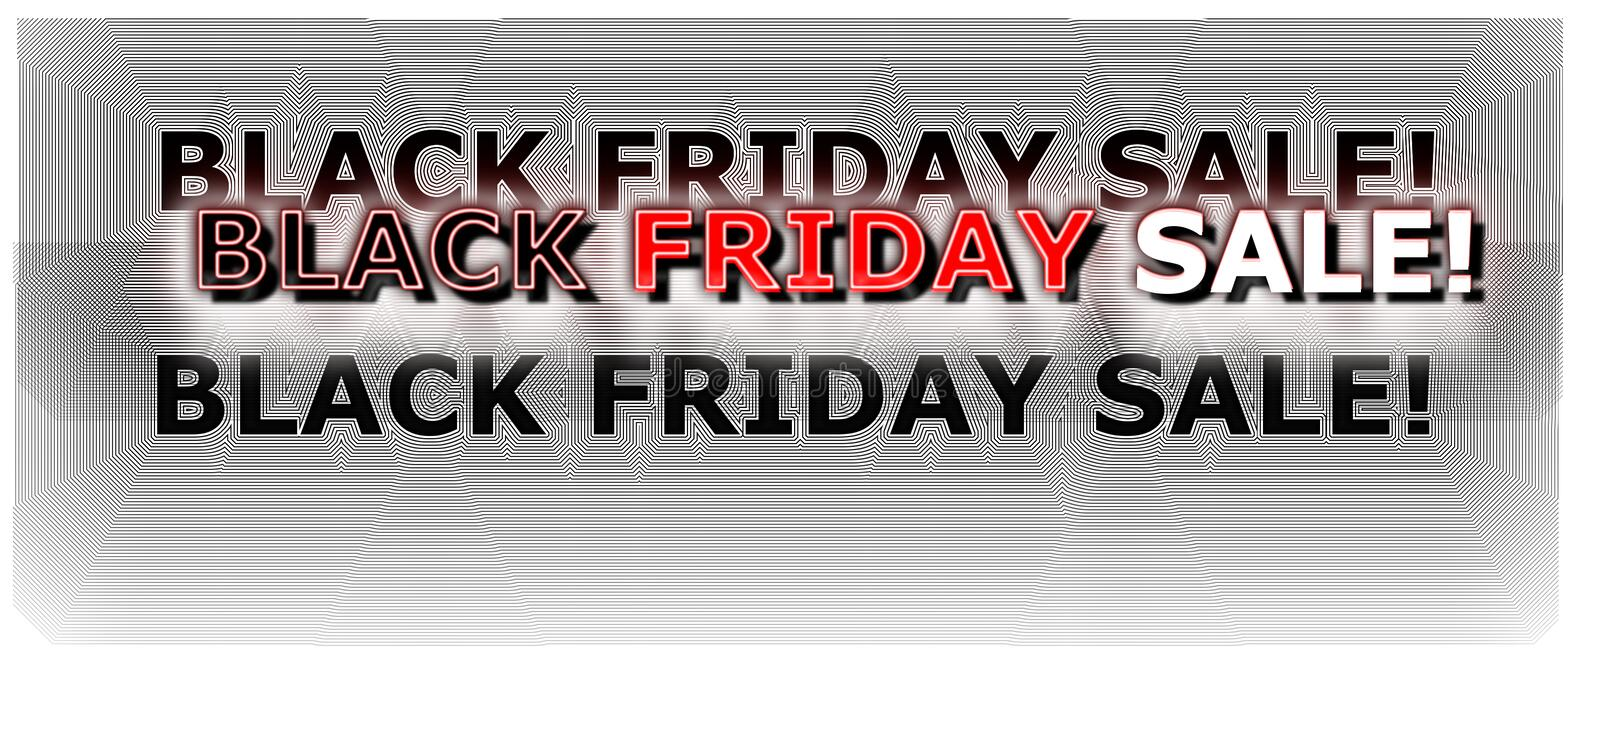 Black Friday shopping banner digital neon colored in red and white stock illustration